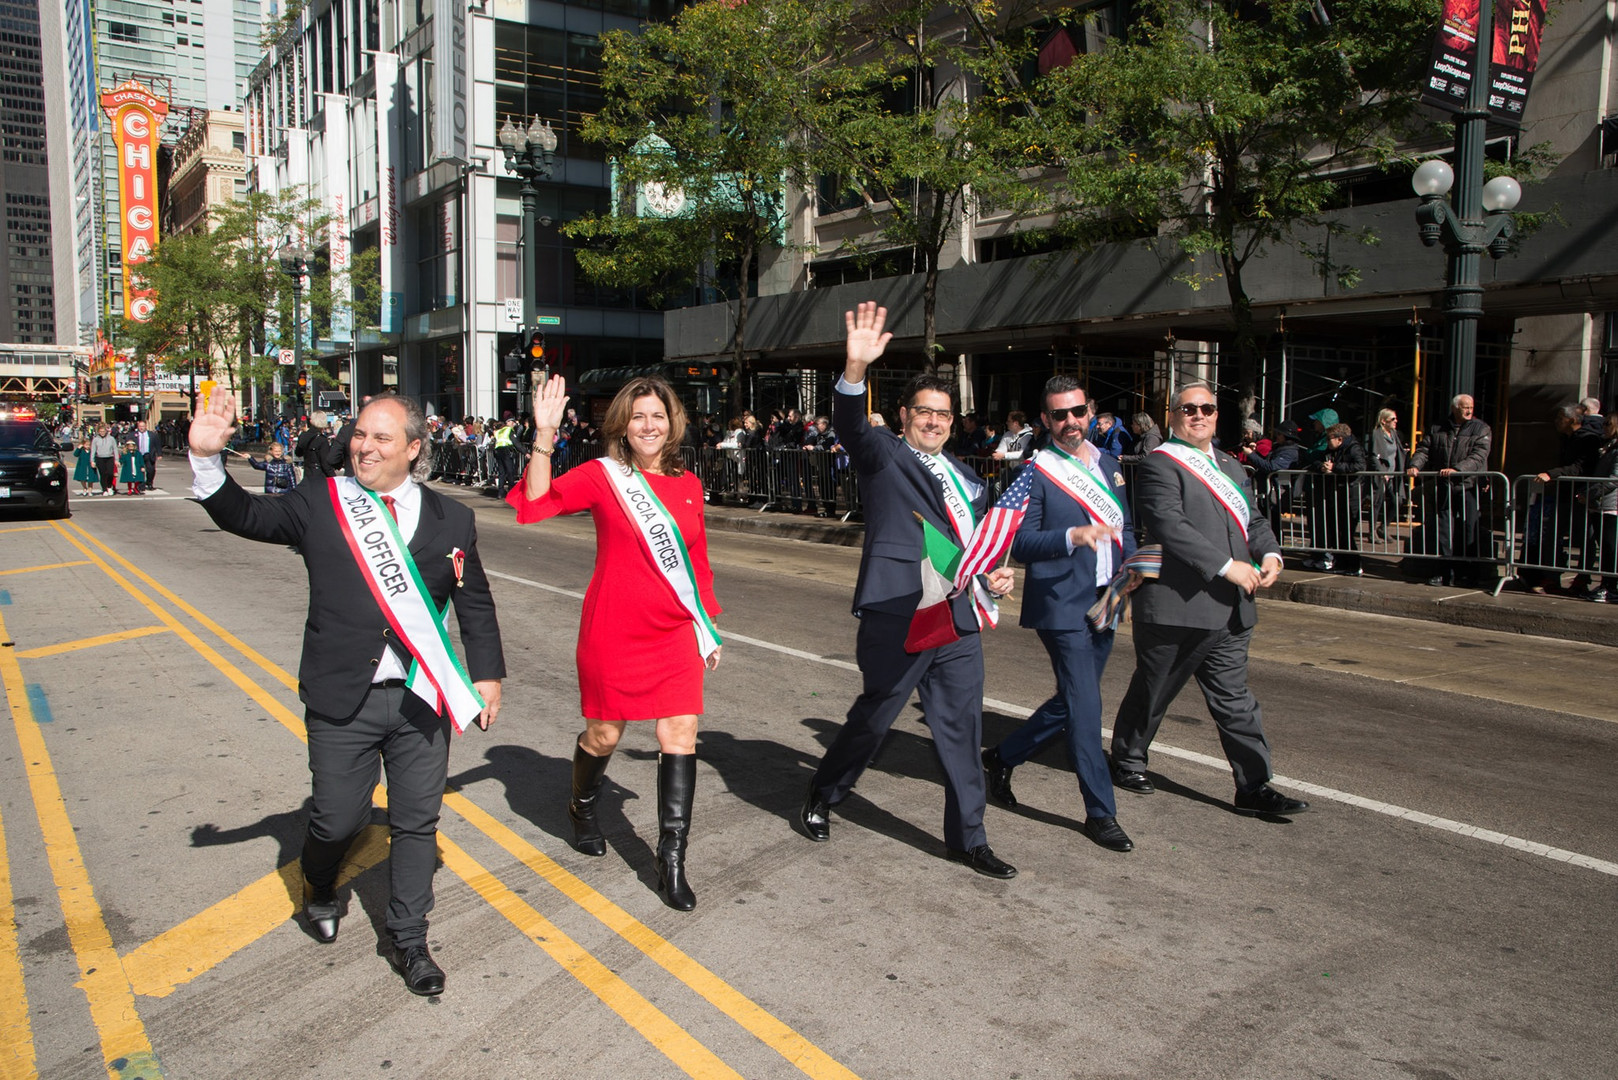 Columbus Day Parade 2019